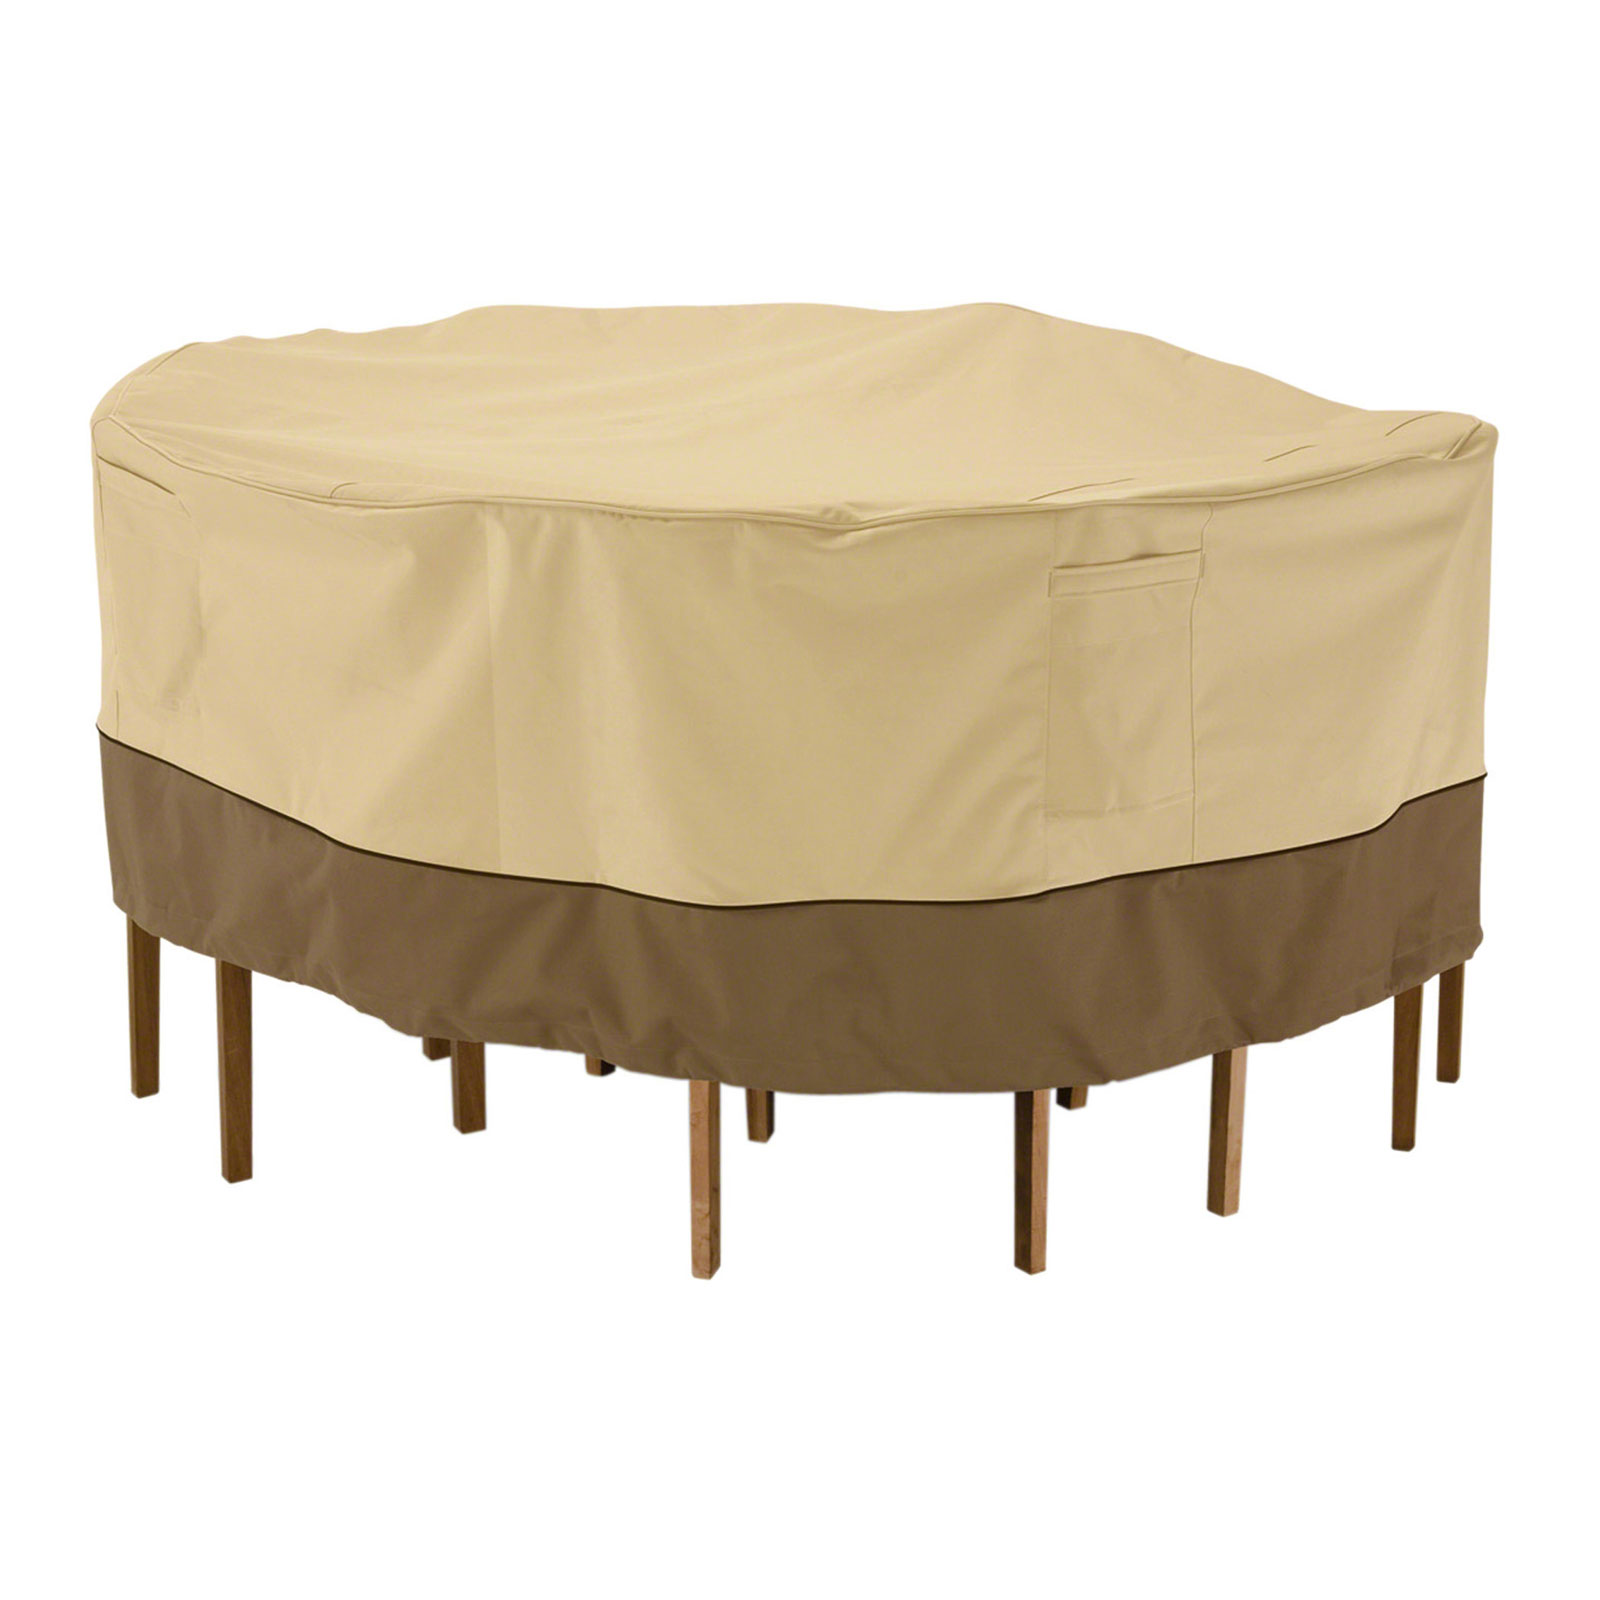 Patio cover table and chairs in patio furniture covers for Patio table chair sets